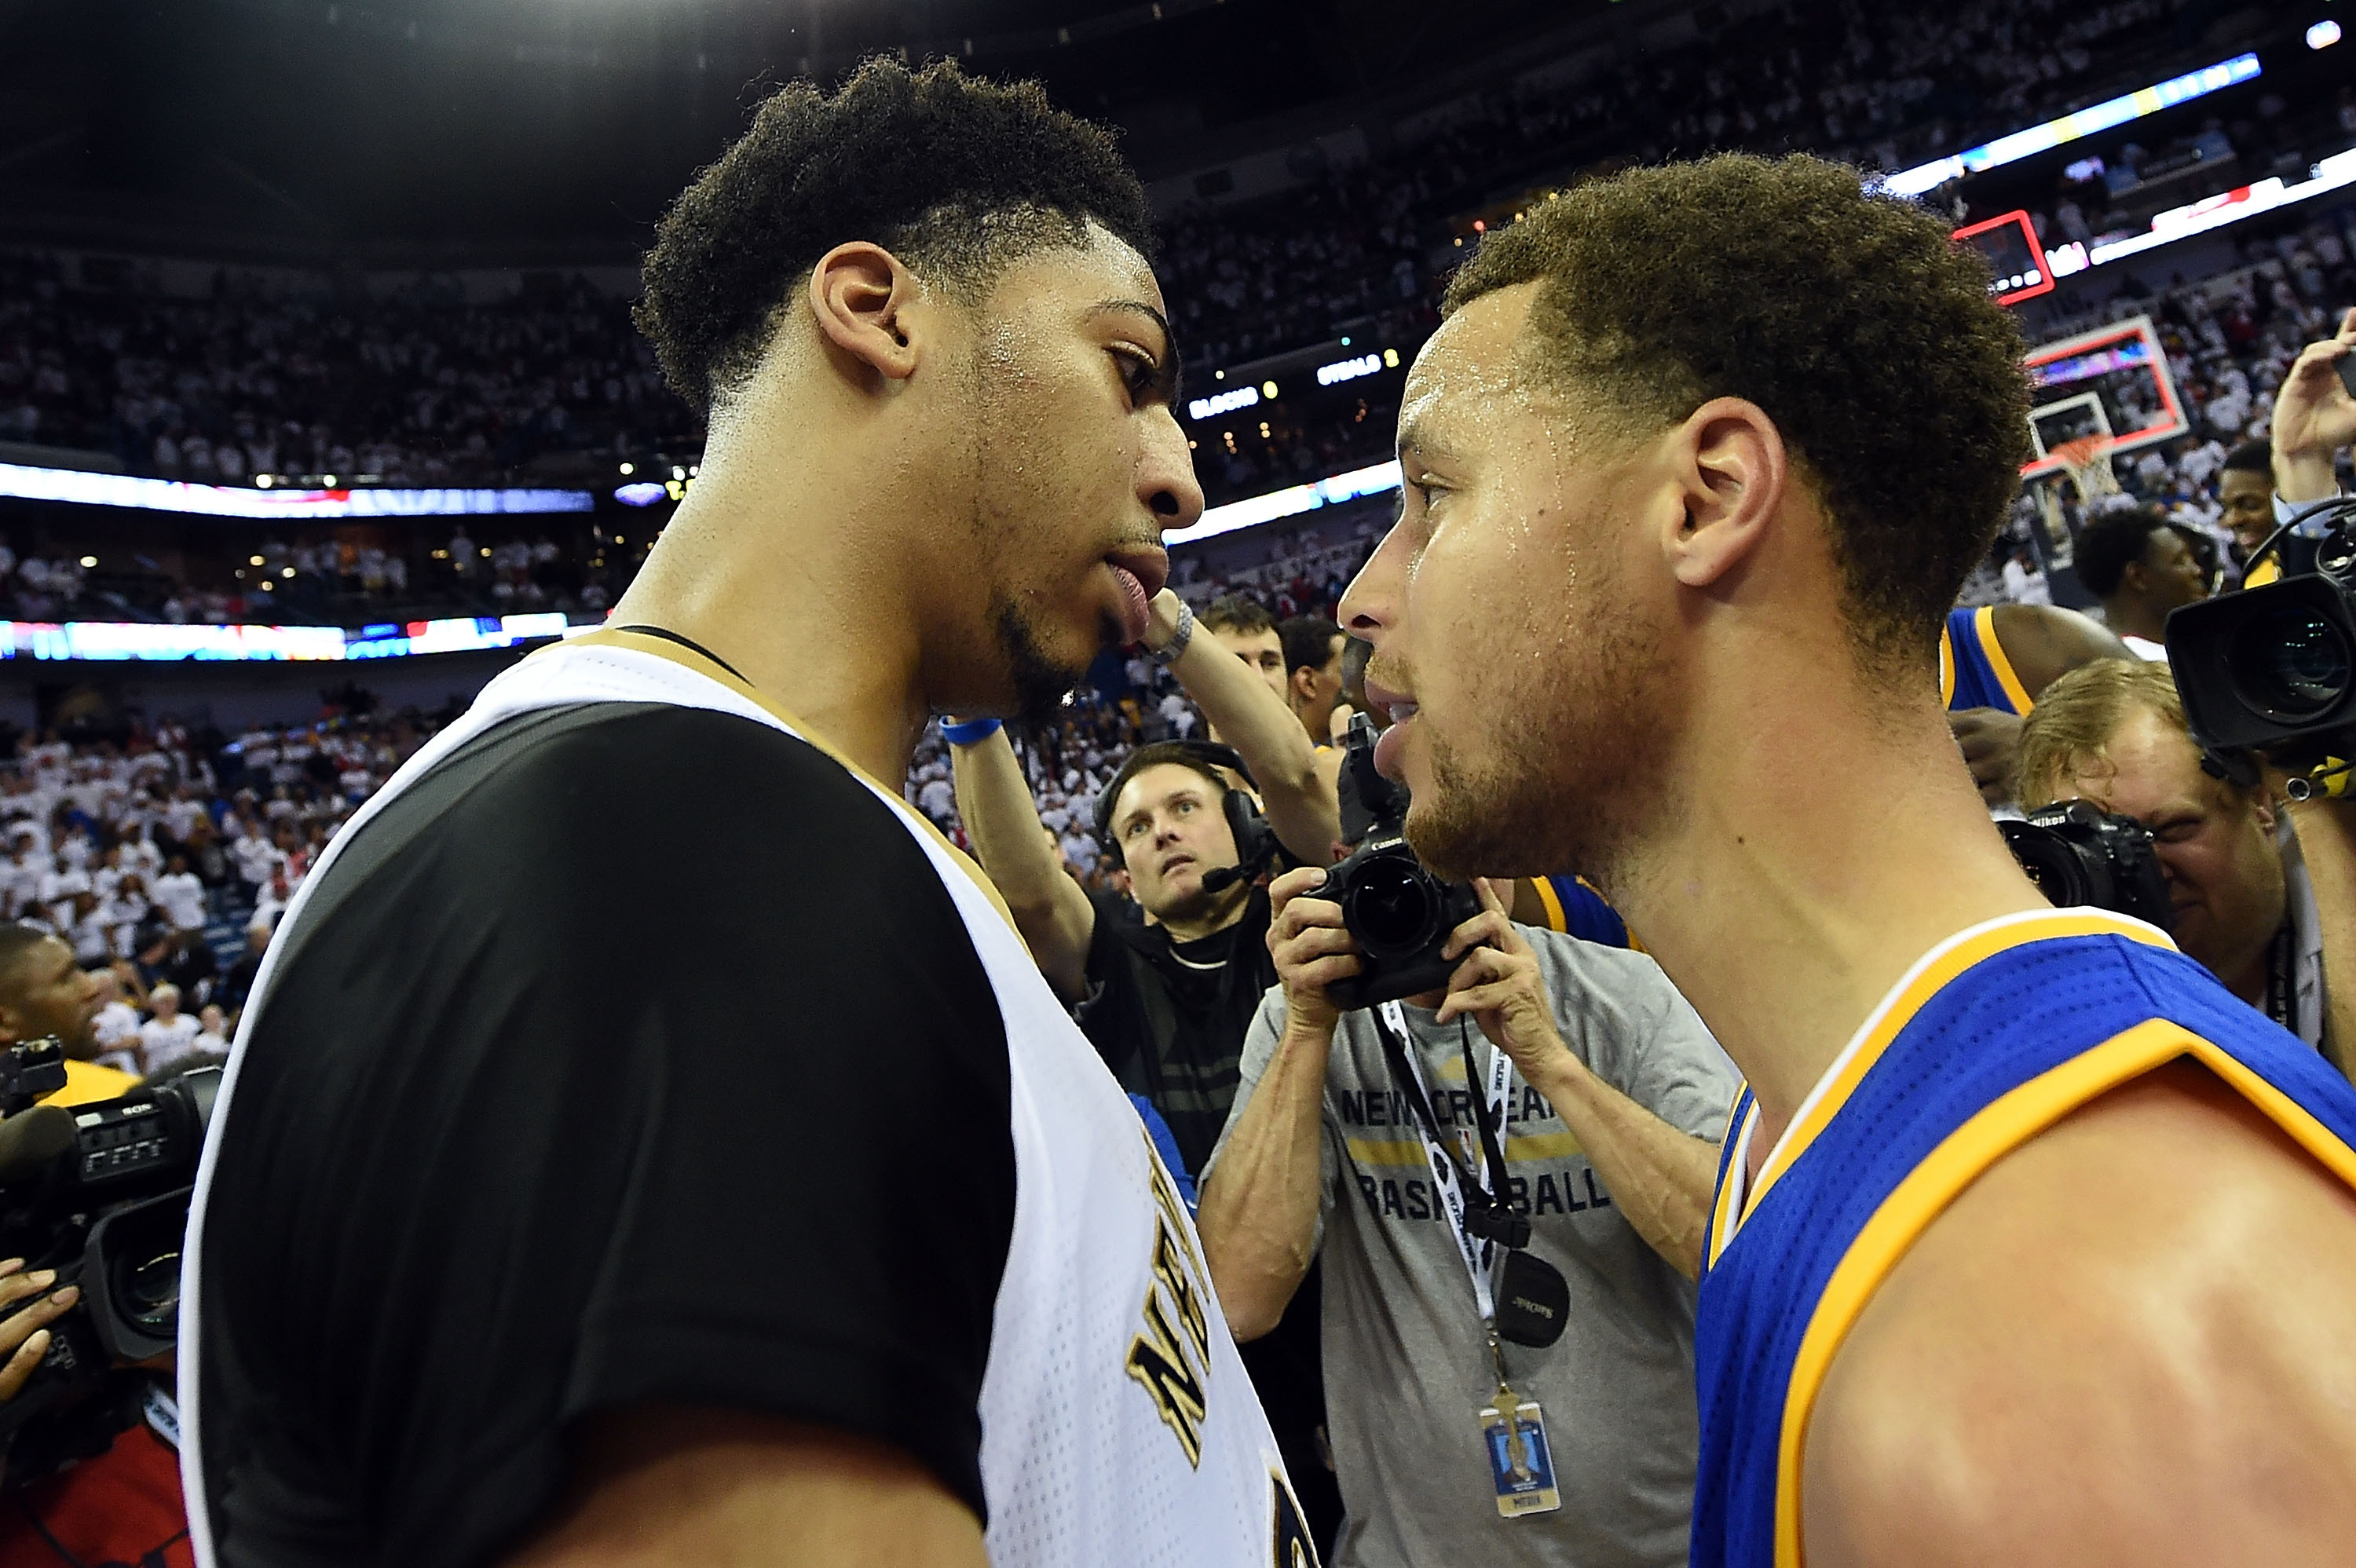 NEW ORLEANS, LA - APRIL 25: Anthony Davis #23 of the New Orleans Pelicans and Stephen Curry #30 of the Golden State Warriors speak at midcourt following Game Four in the first round of the 2015 NBA Playoffs at the Smoothie King Center on April 25, 2015 in New Orleans, Louisiana. NOTE TO USER: User expressly acknowledges and agrees that, by downloading and or using this photograph, User is consenting to the terms and conditions of the Getty Images License Agreement. (Photo by Stacy Revere/Getty Images)